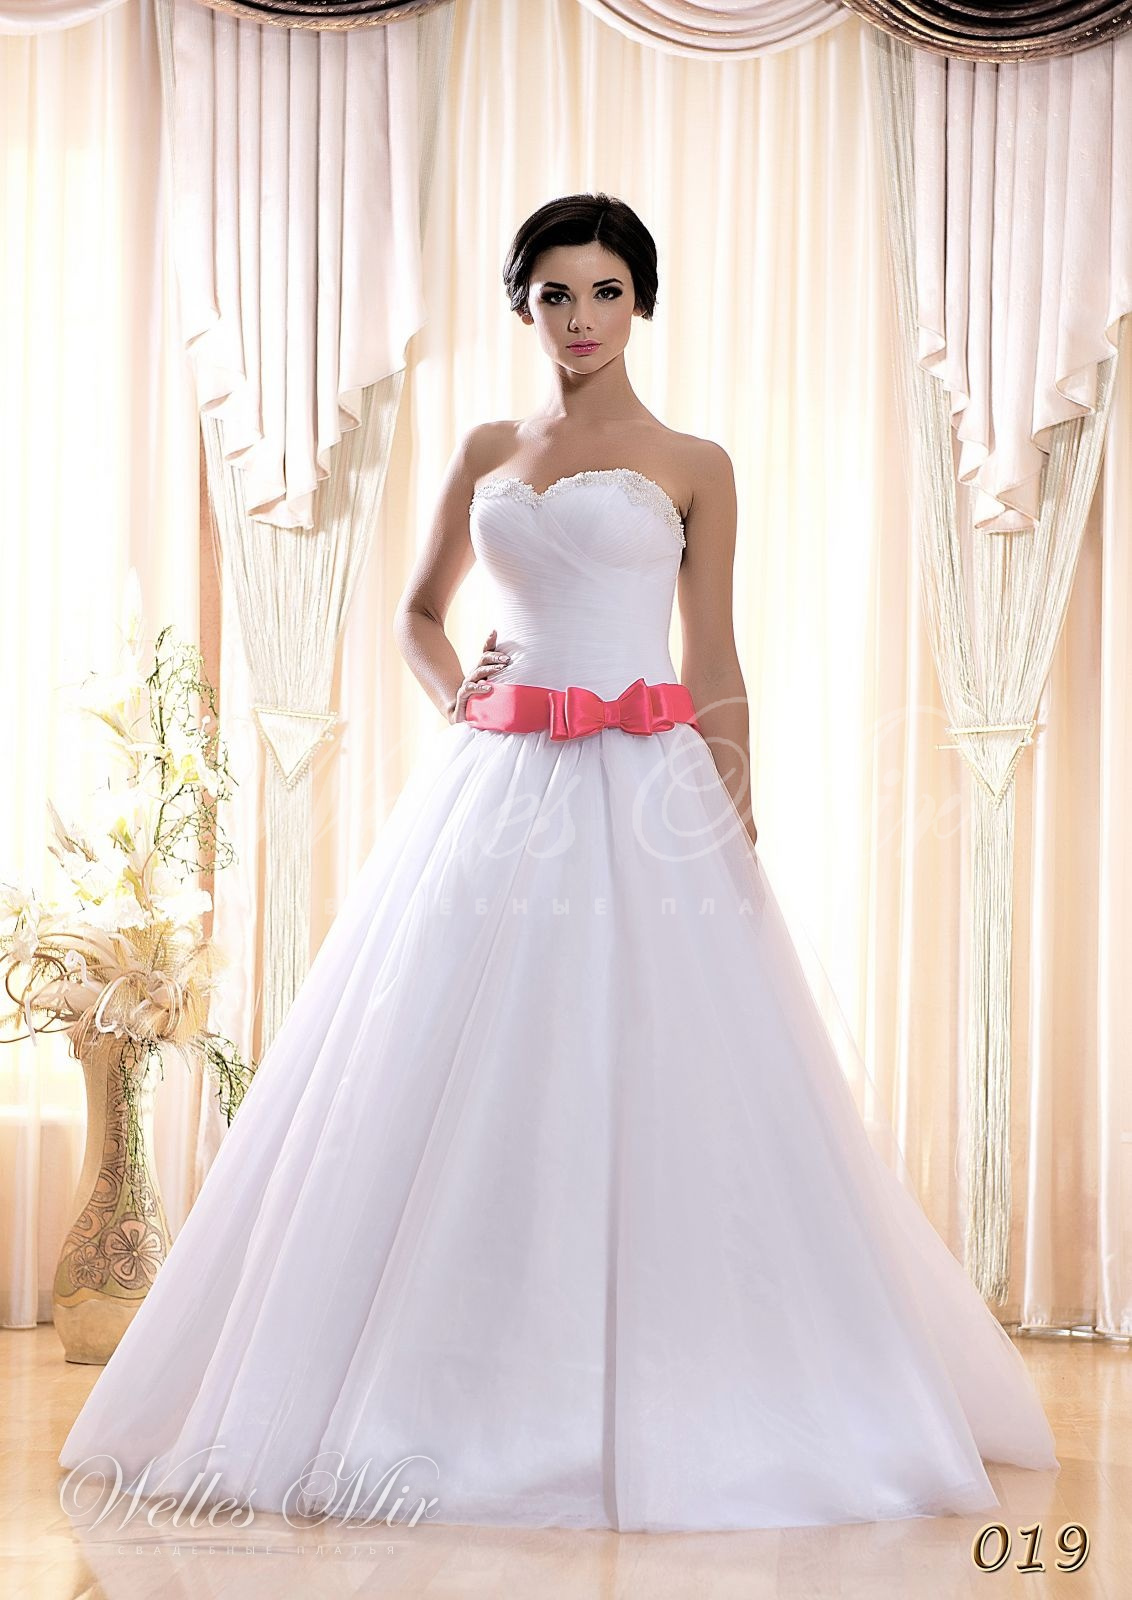 Wedding dresses 019